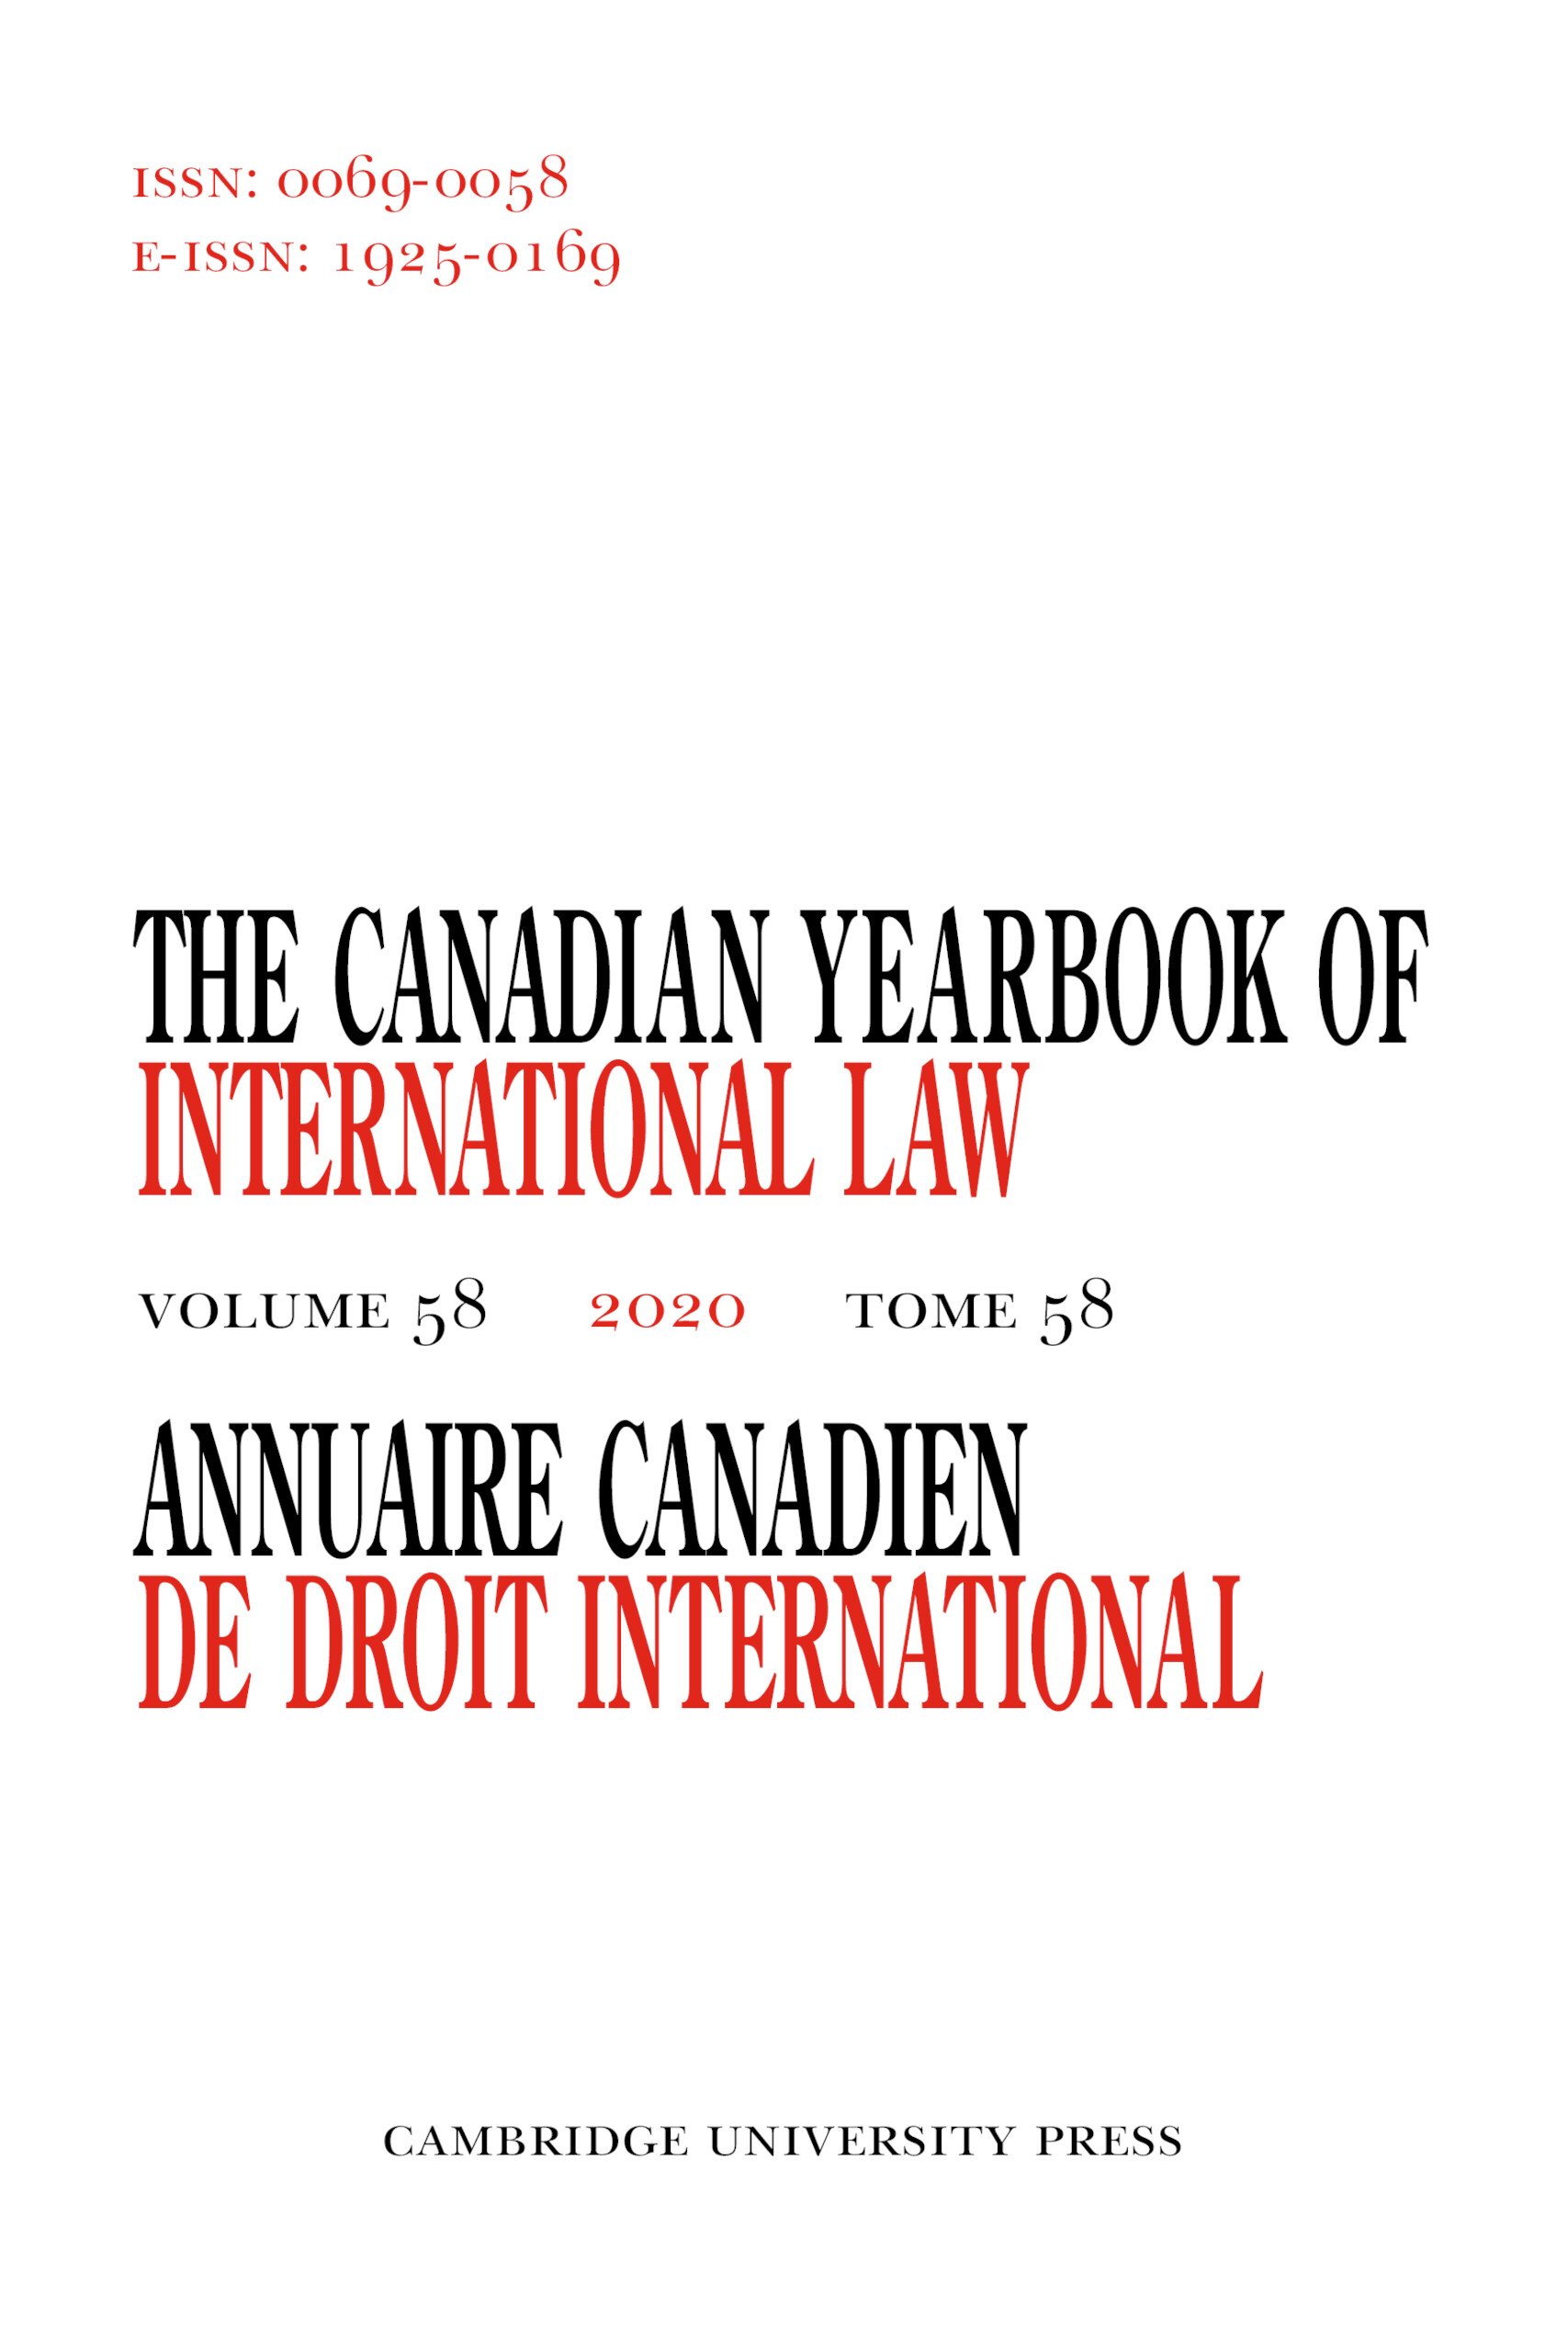 Canadian Yearbook of International Law / Annuaire canadien de droit international